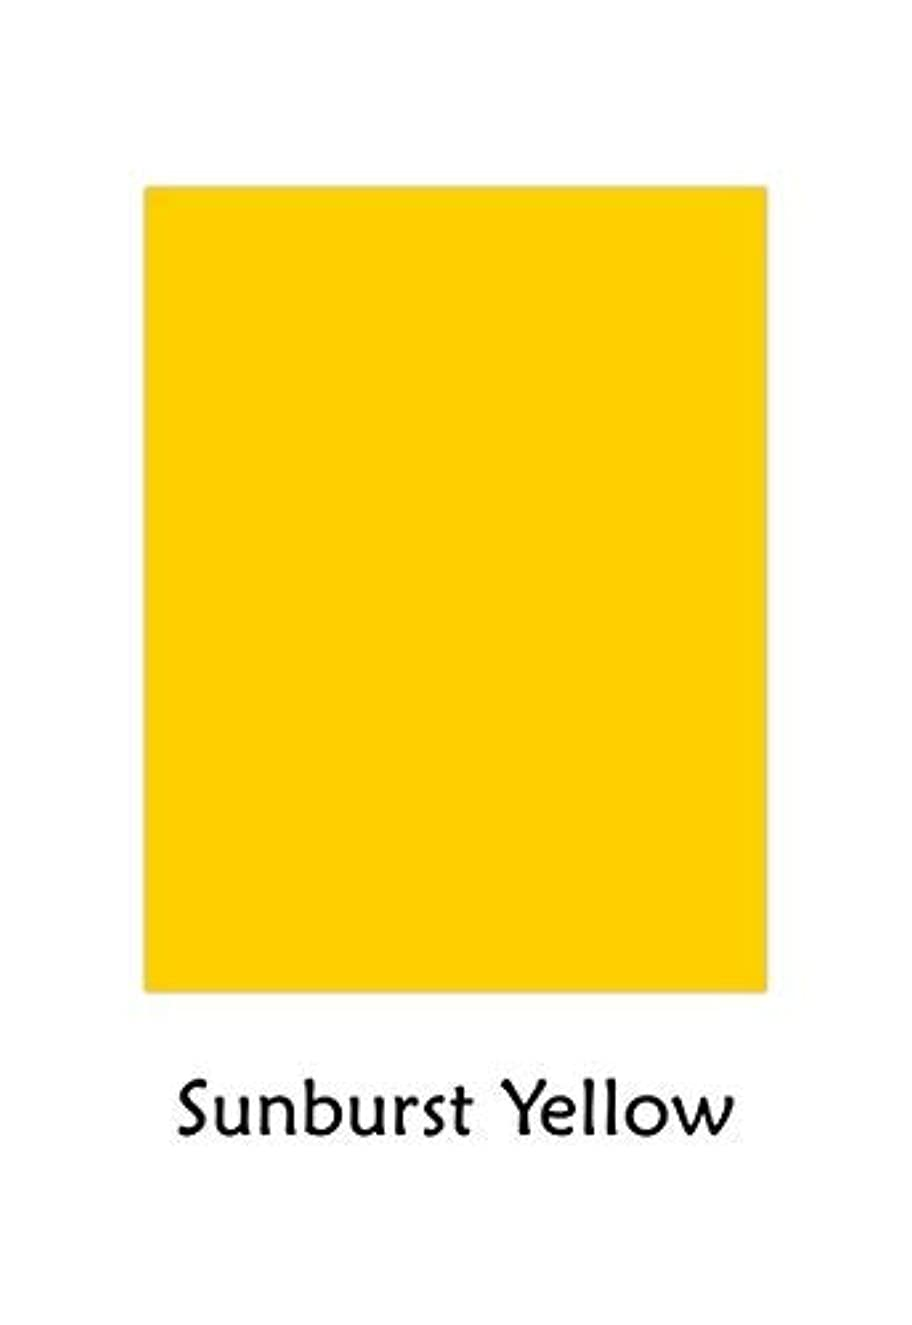 Premium Color Card Stock Paper | 50 Per Pack | Superior Thick 65-lb Cardstock, Perfect for School Supplies, Holiday Crafting, Arts and Crafts | Acid & Lignin Free | Sunburst Yellow | 8.5 x 11